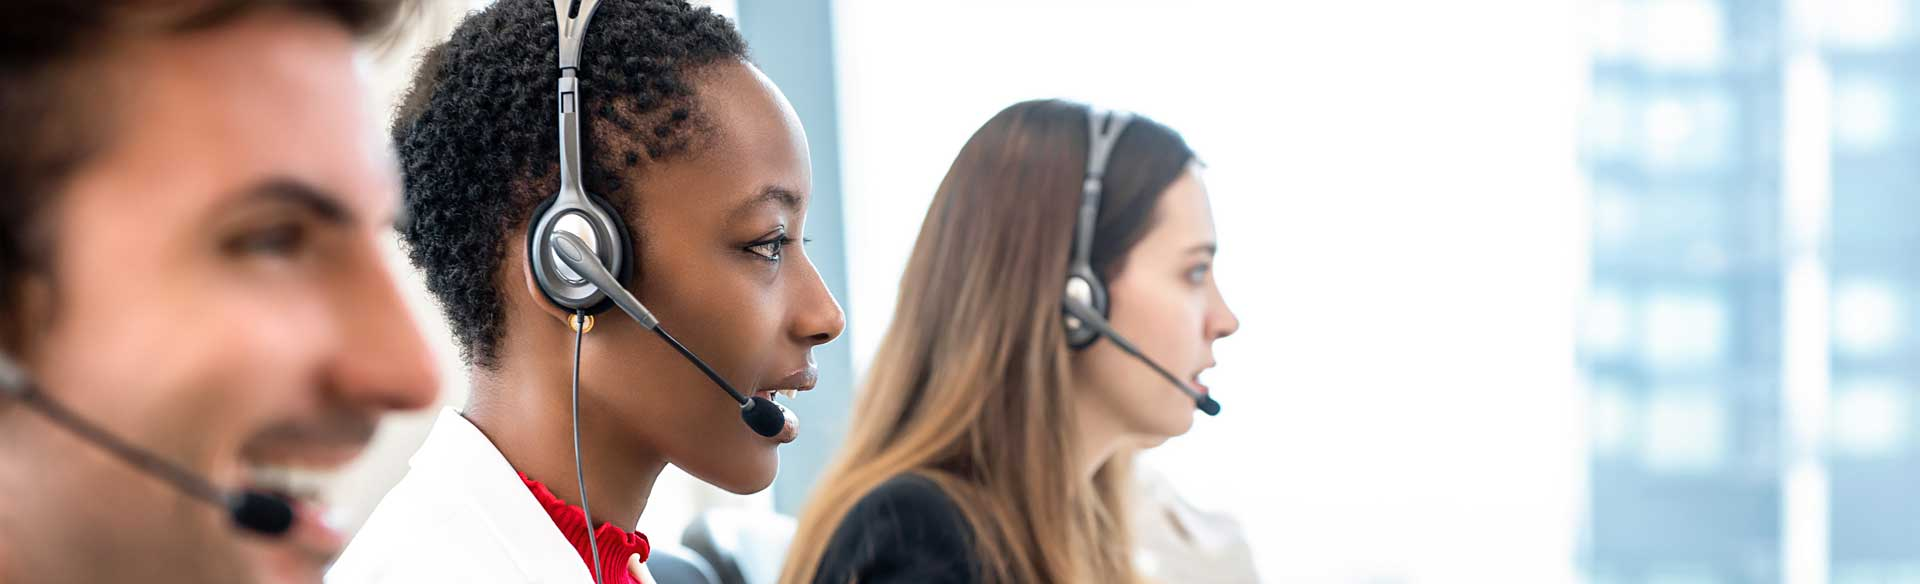 three_customer_service_reps_with_headsets